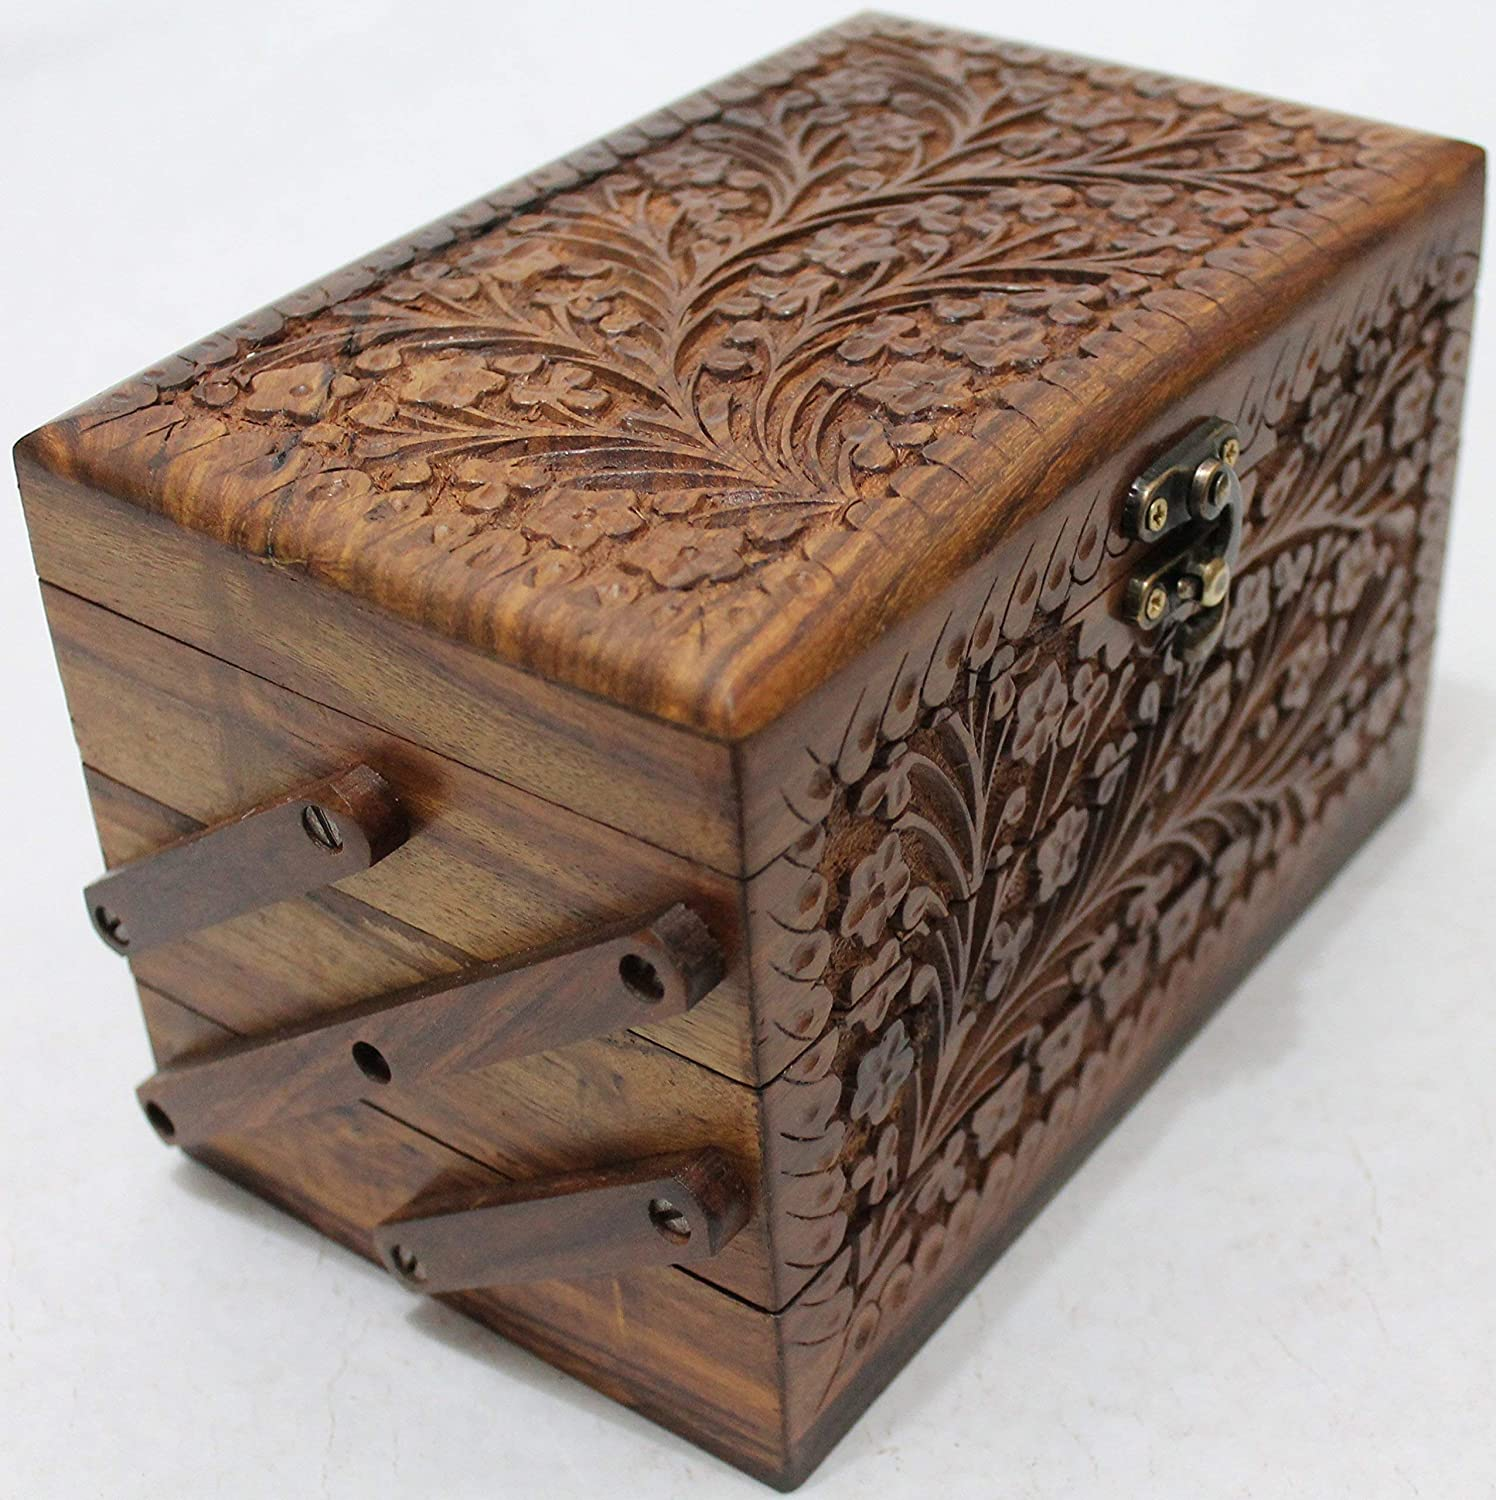 """2020 latest Unique Wooden Valentines Day Gift Hers Jewelry Box Solid Wooden with Hand Carving Floral Designs and Medieval Era Lock Three Compartments 8""""x5""""x5"""" 91ddZ6fePJL"""